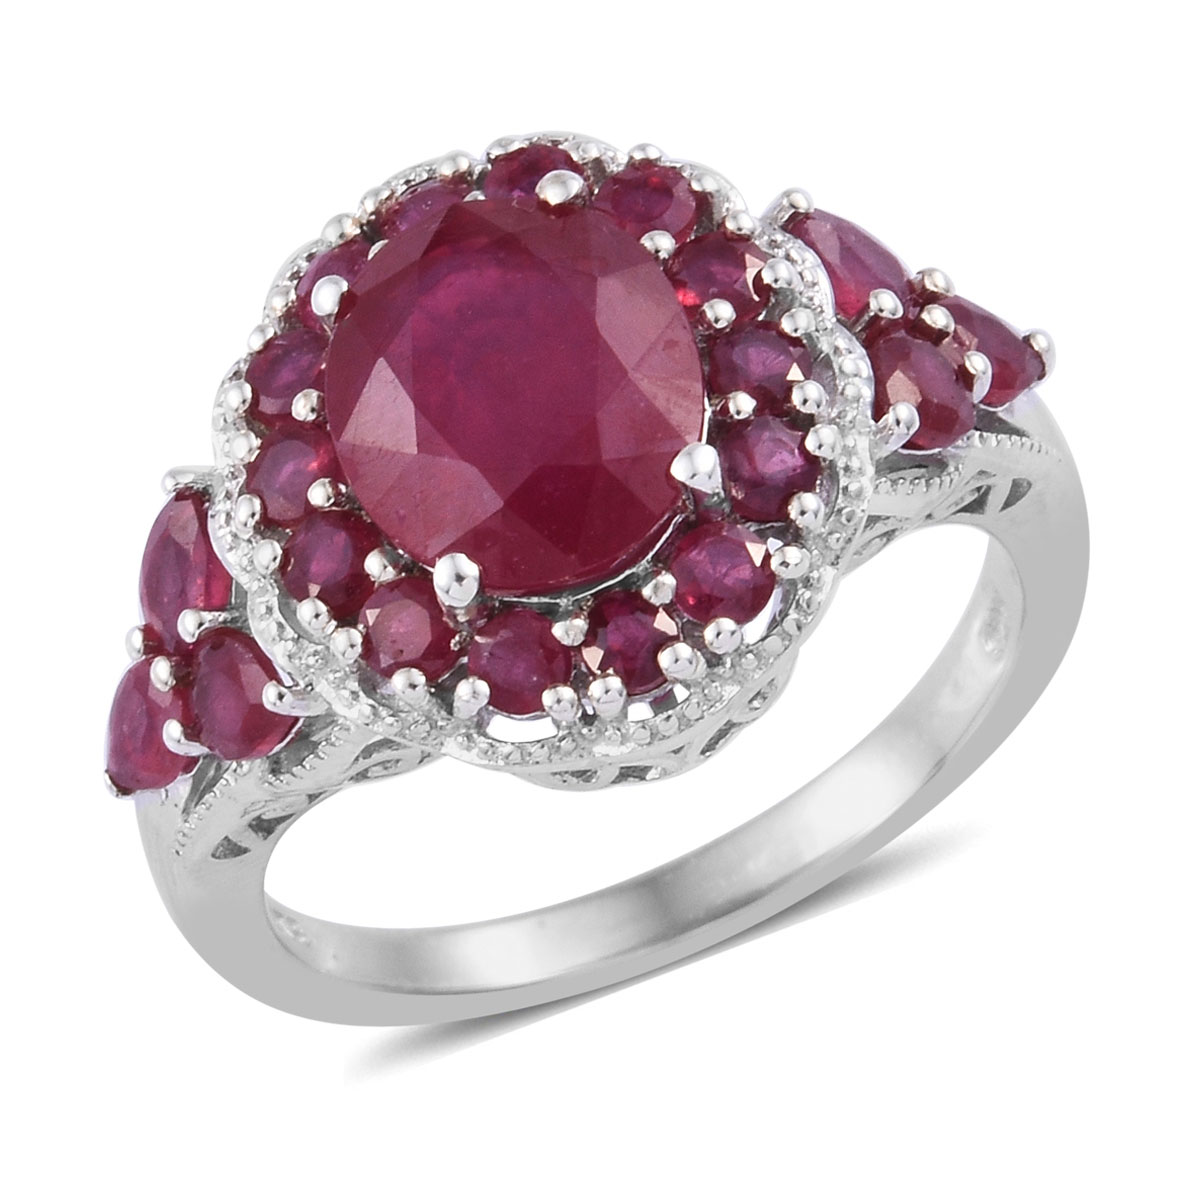 Fine Pink Opal Fissure Filled Ruby Halo Ring Silver Platinum Plated Size 10 Ct 1.75 Gemstone